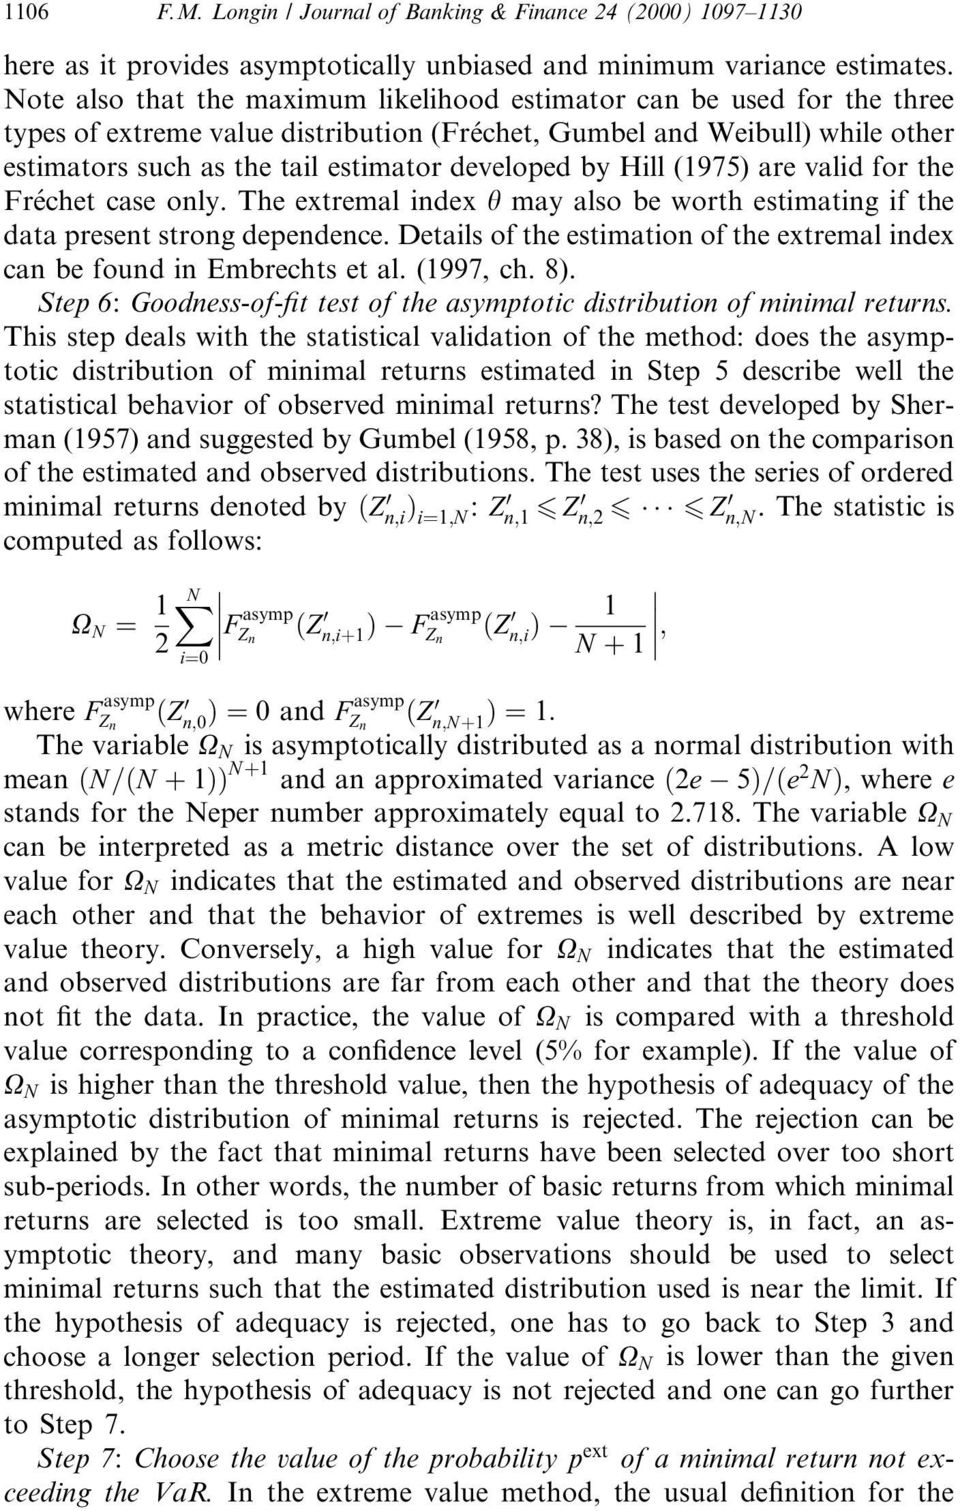 by Hill (1975) are valid for the Frechet case only. The extremal index h may also be worth estimating if the data present strong dependence.